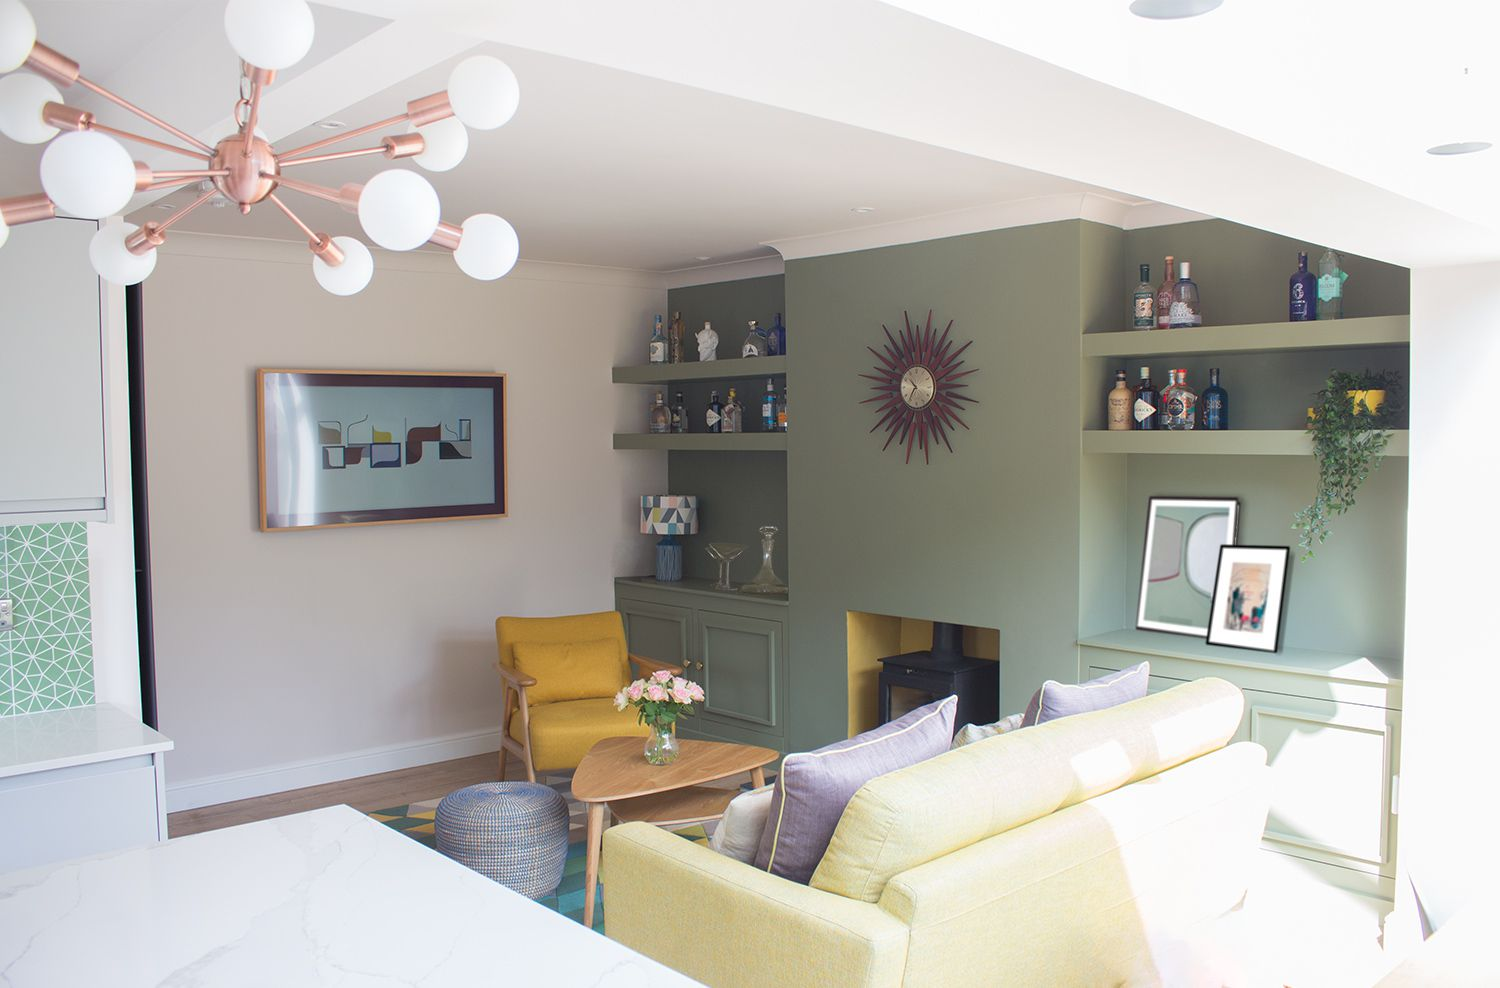 A view of the green painted built in shelving, with the Frame TV on the wall, and the sofa and yellow armchair.